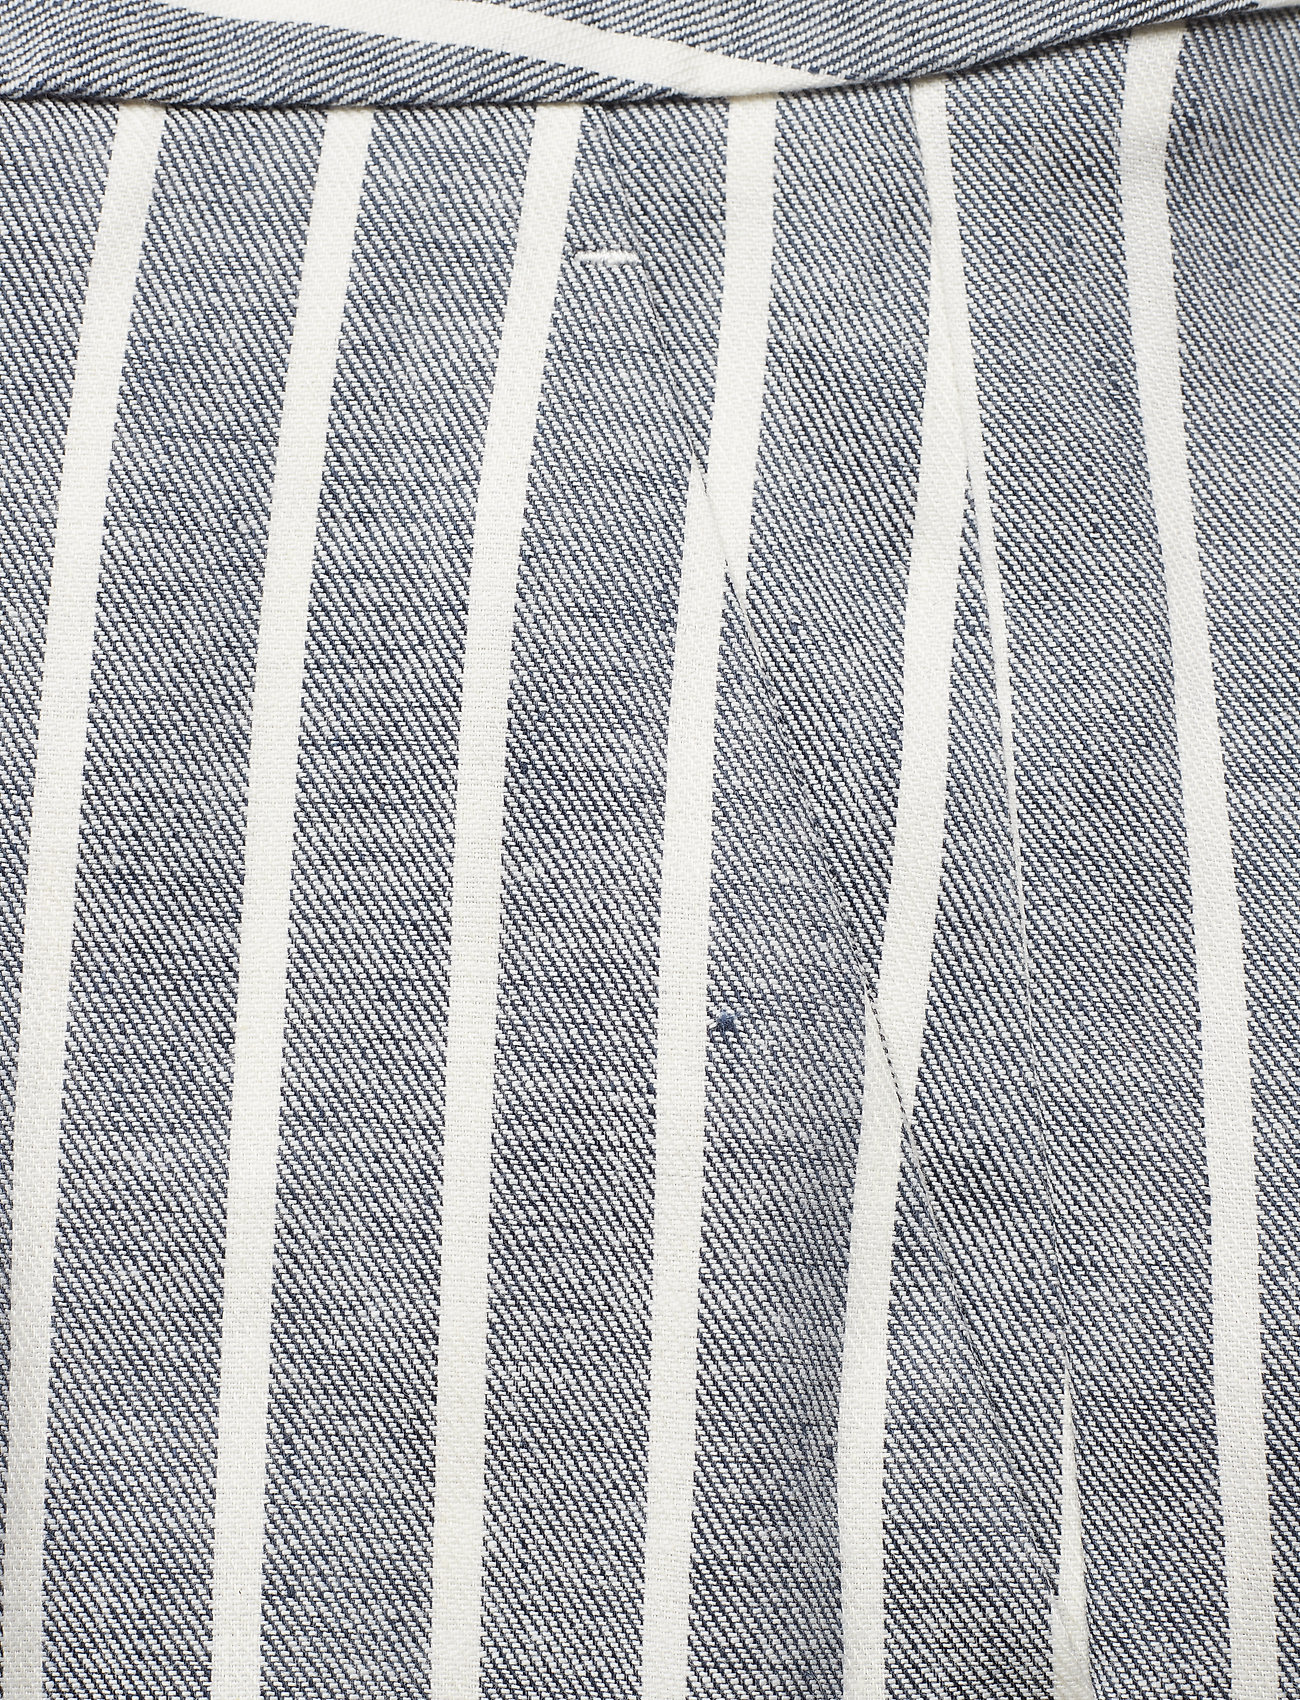 Rise Stripepreppy Crop Linen High NavyBanana Republic Leg Wide Y6b7yfg